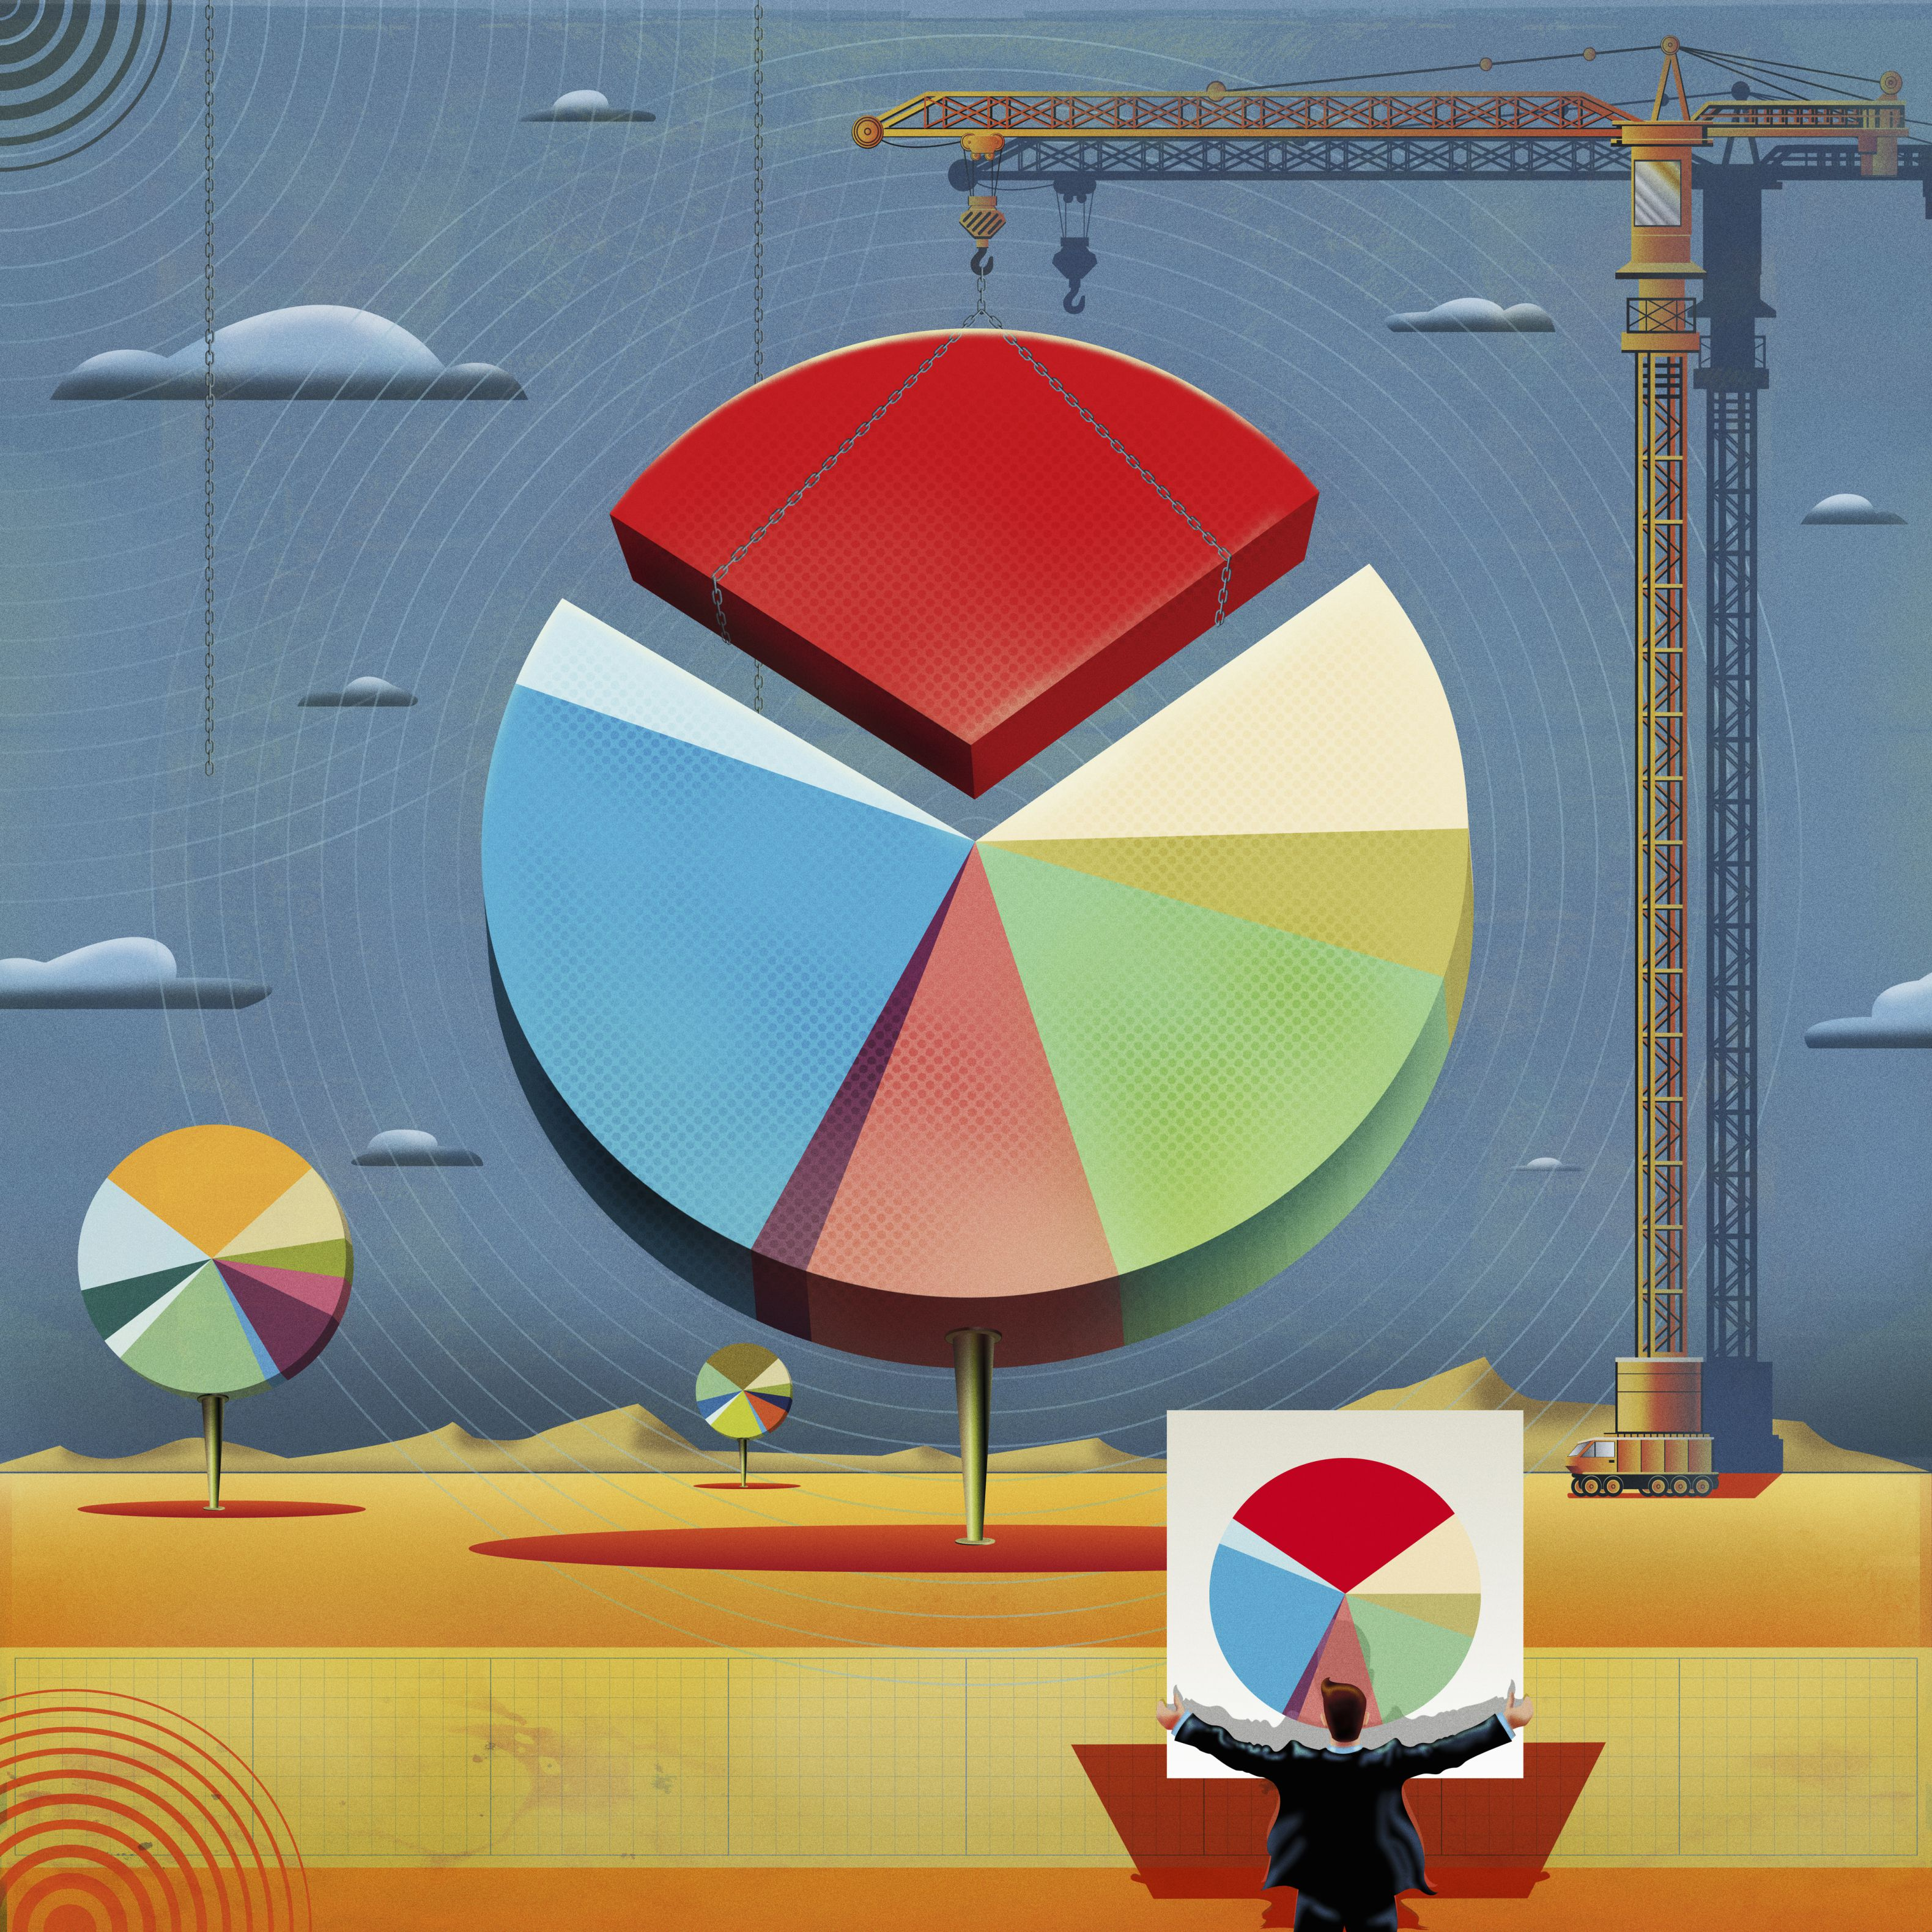 Small Investment Ideas Beginners: Rebalancing Your Investment Portfolio